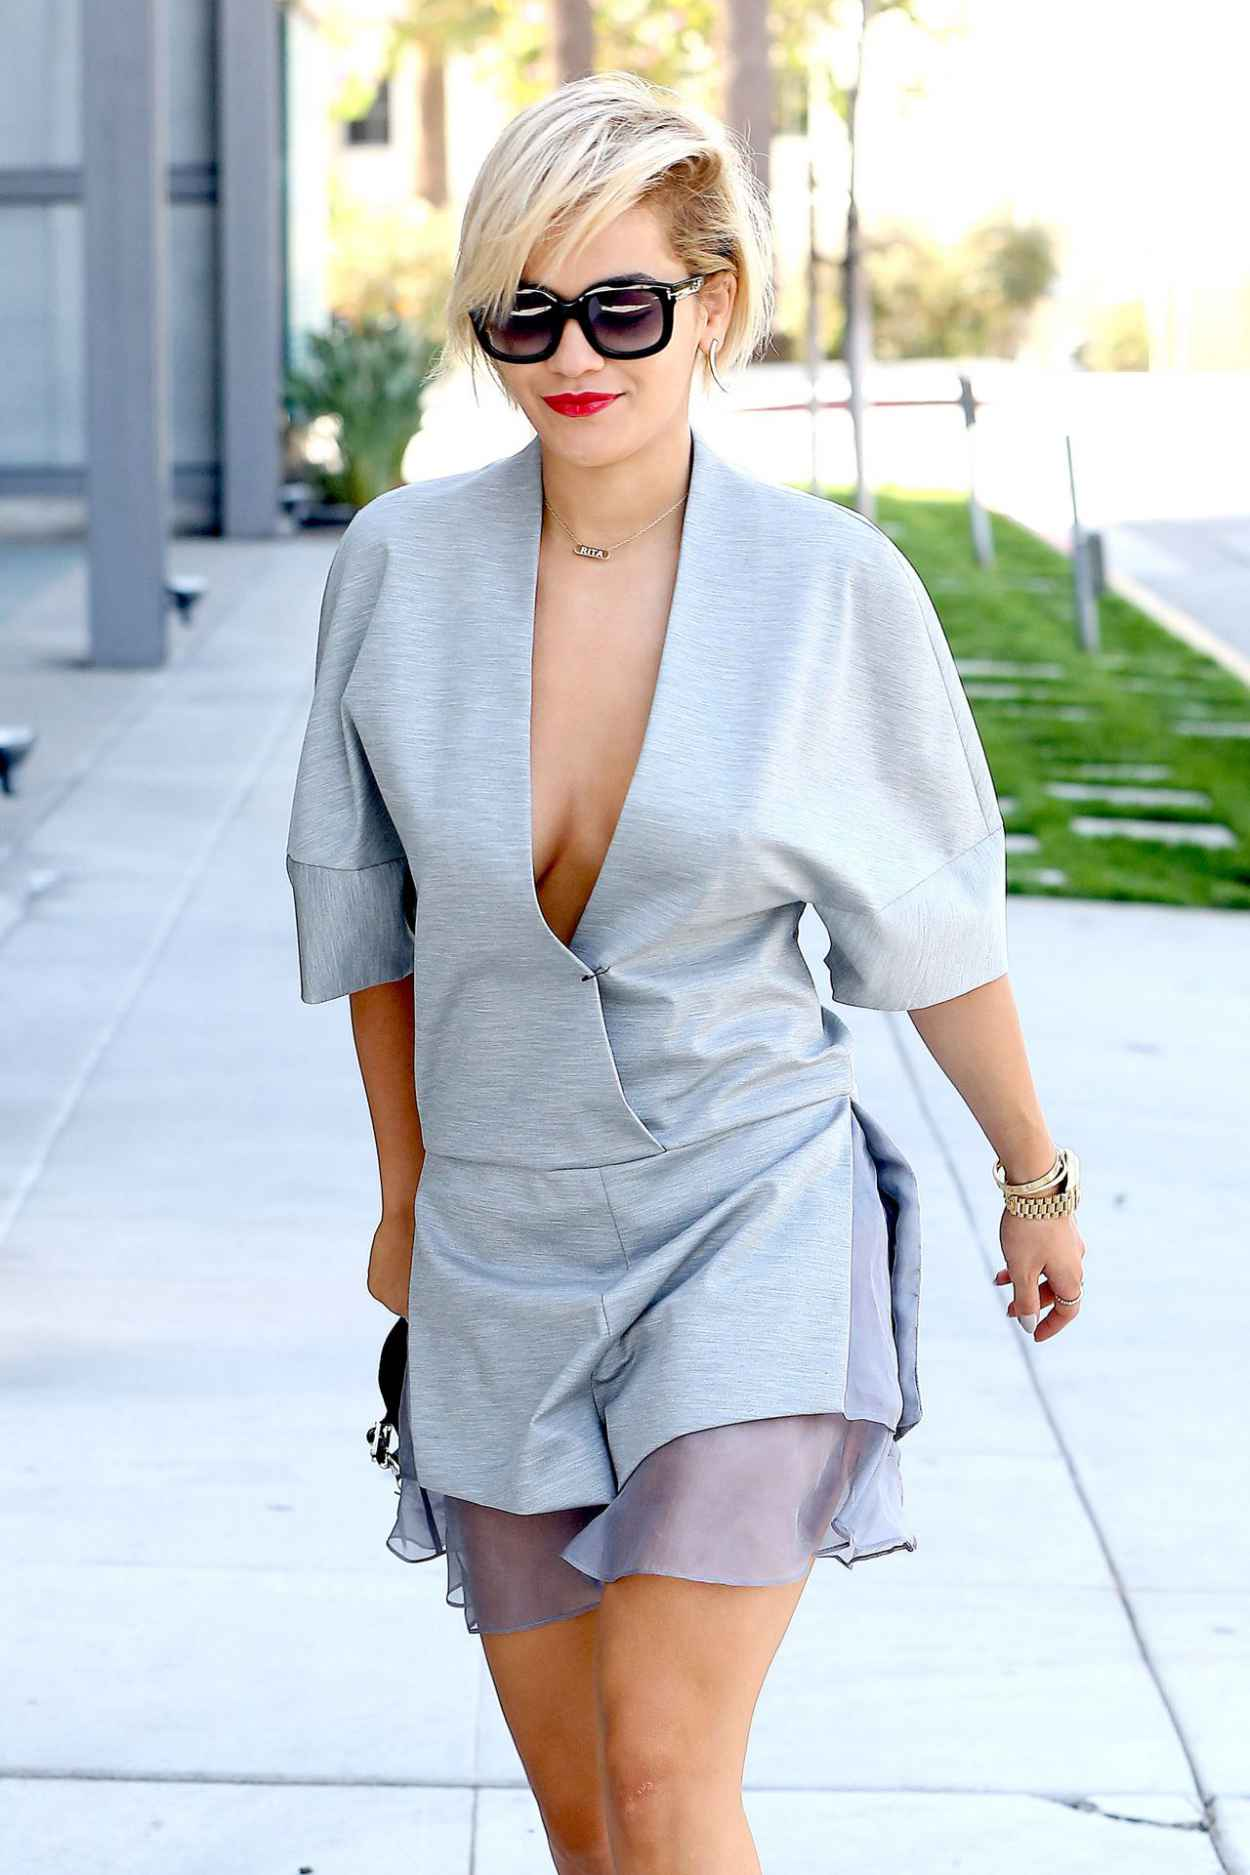 Rita Ora Out in Los Angeles - March 2015-1